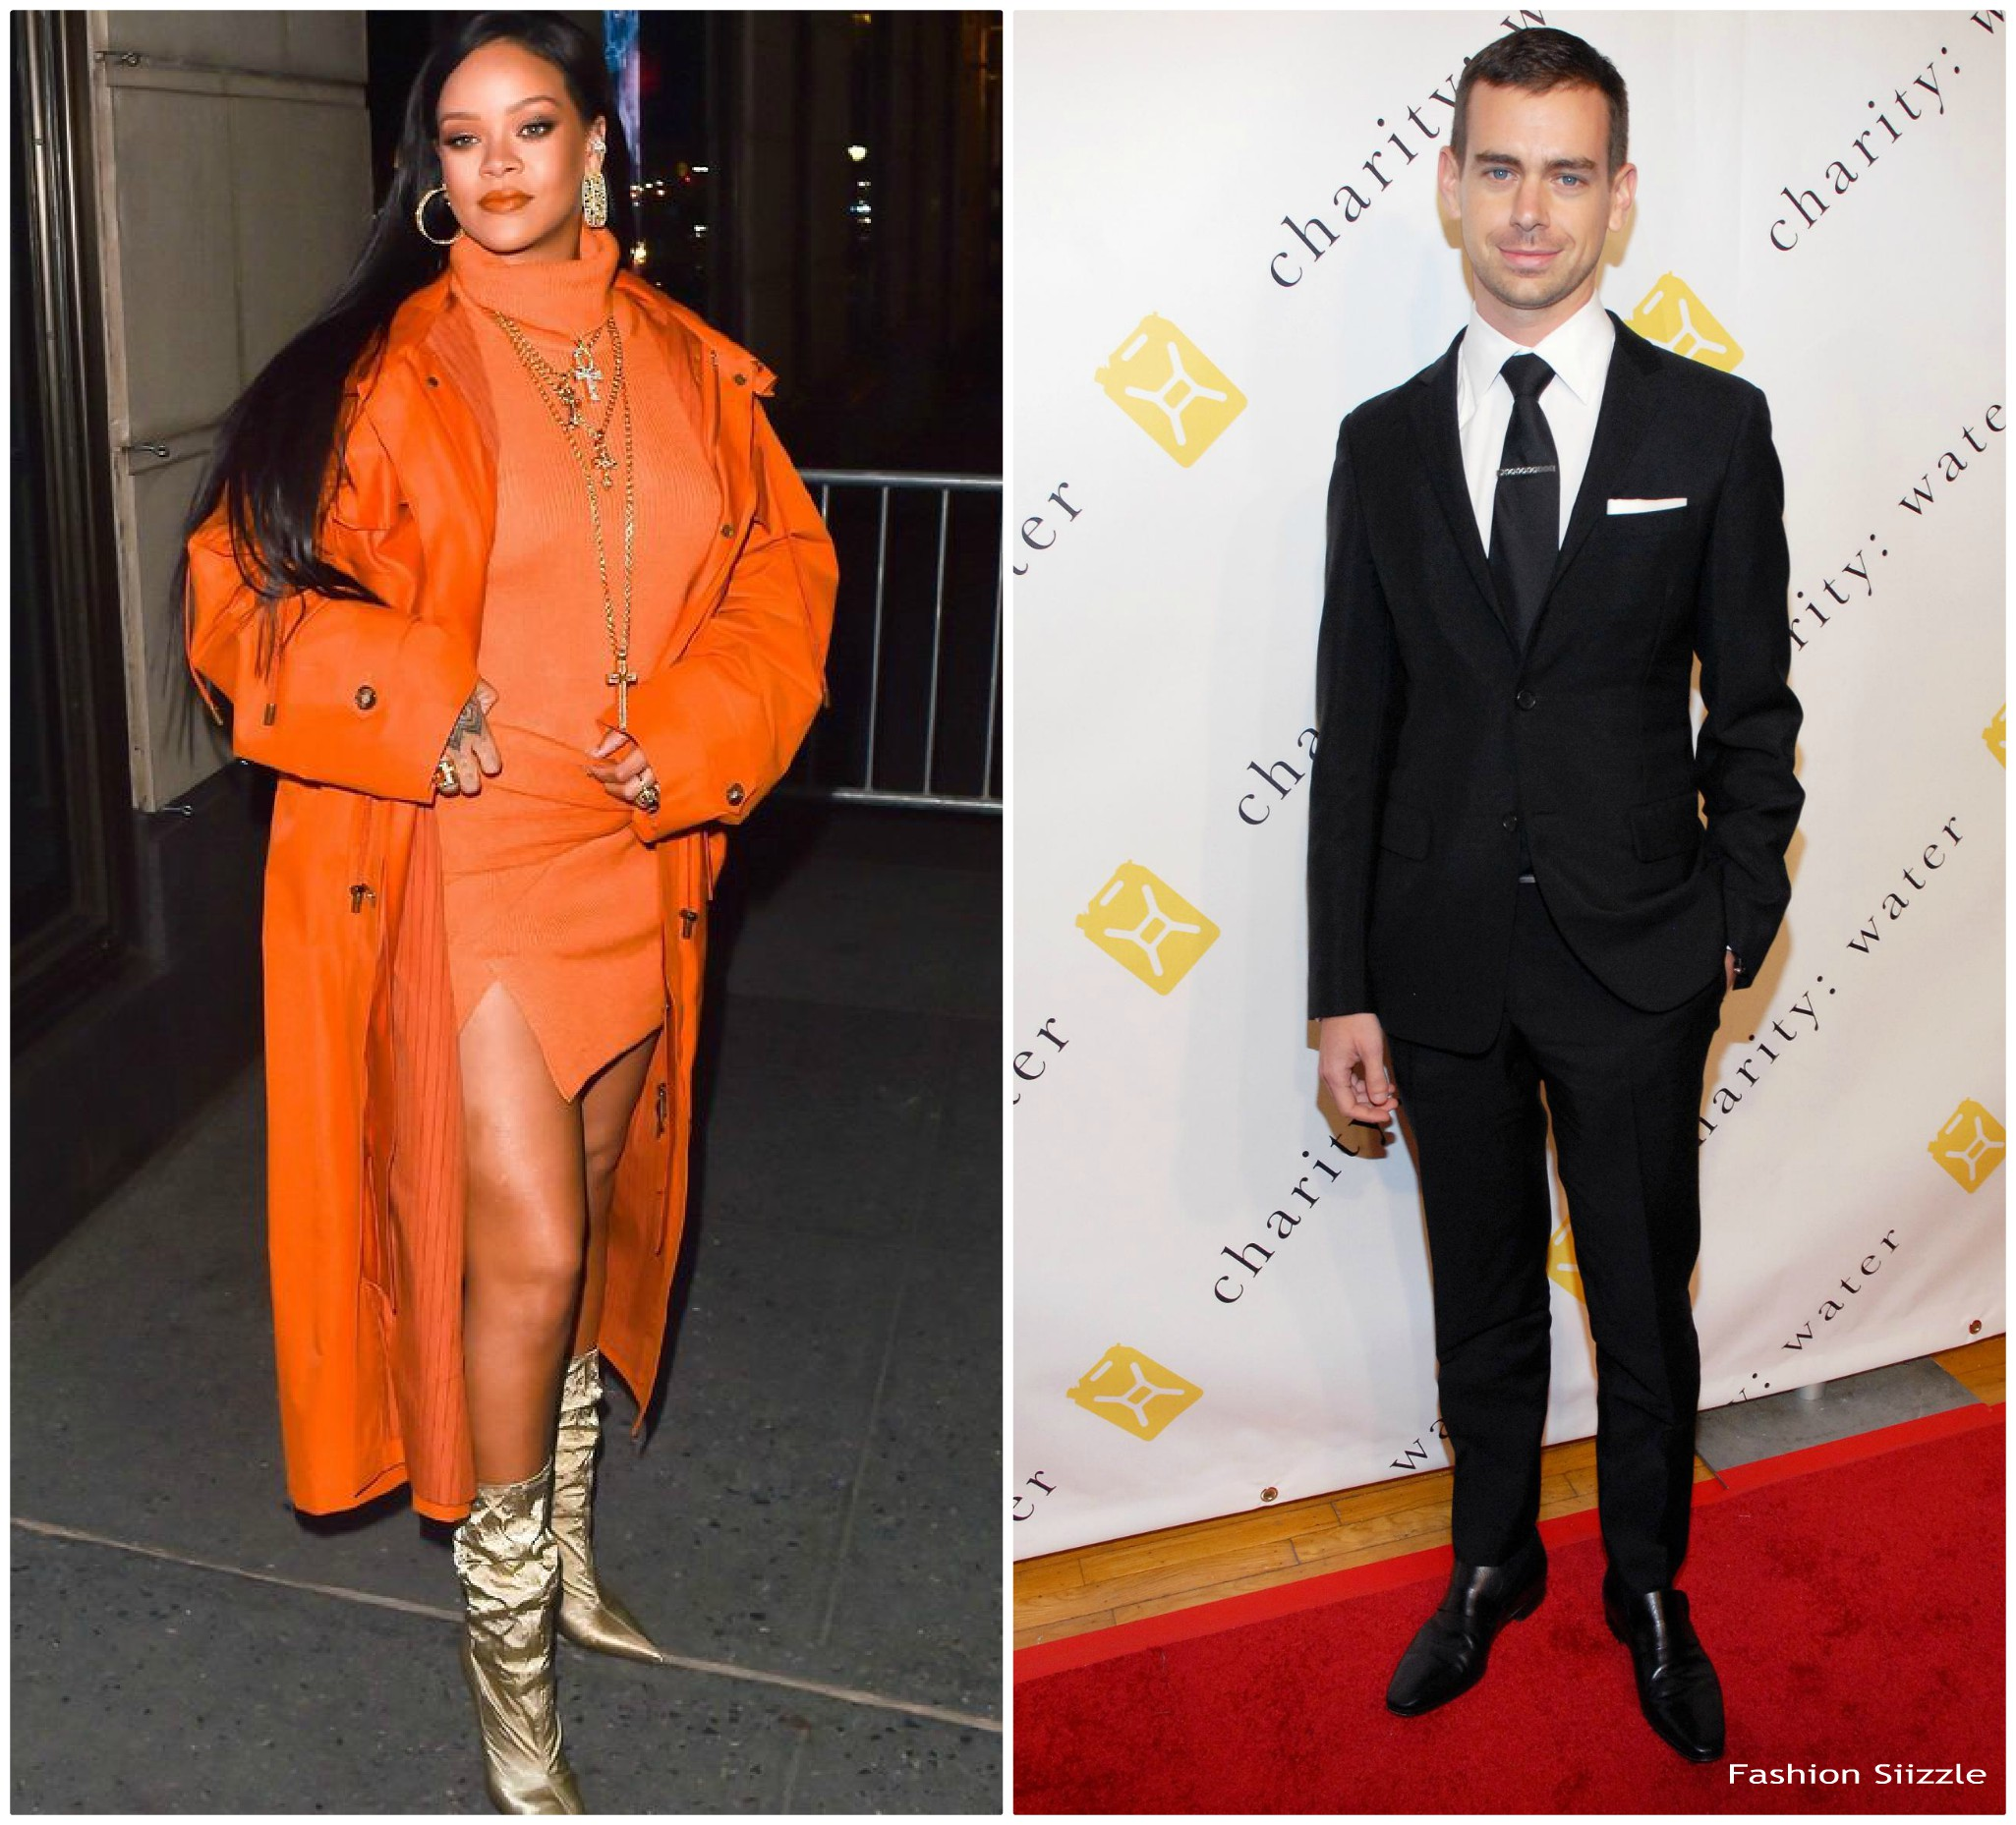 rihanna-twitter-ceo-jack-dorsey-donated-15m-to-mental-helath-services